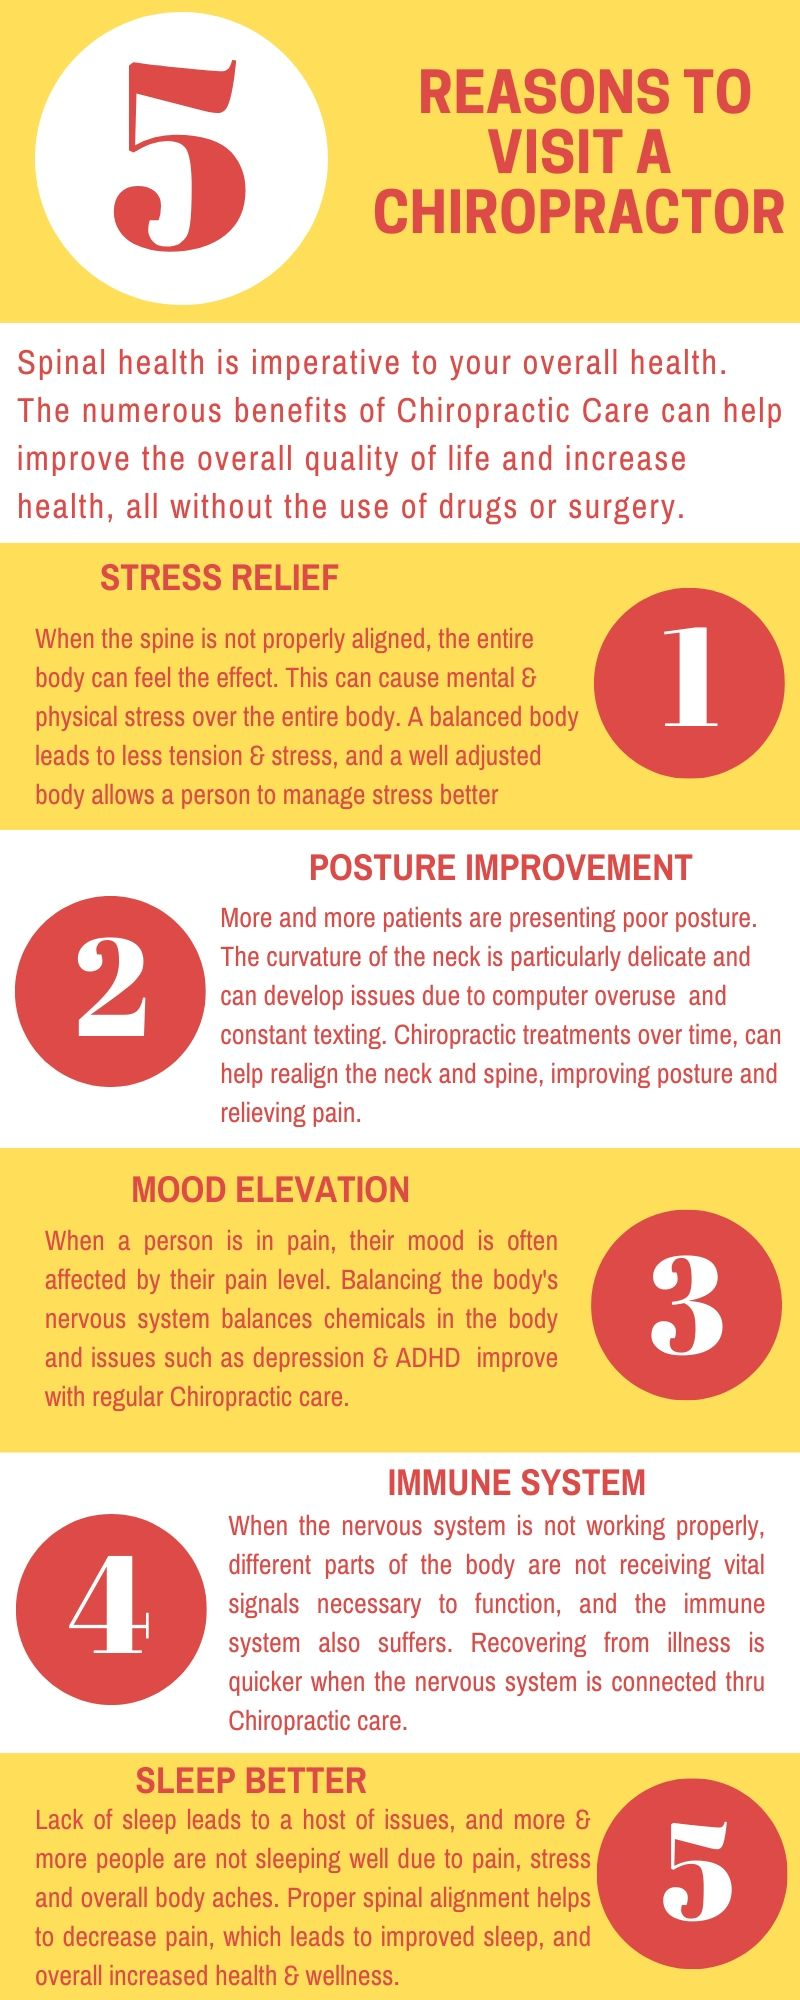 5 Easy Steps to Find a Chiropractor in Littleton(2)